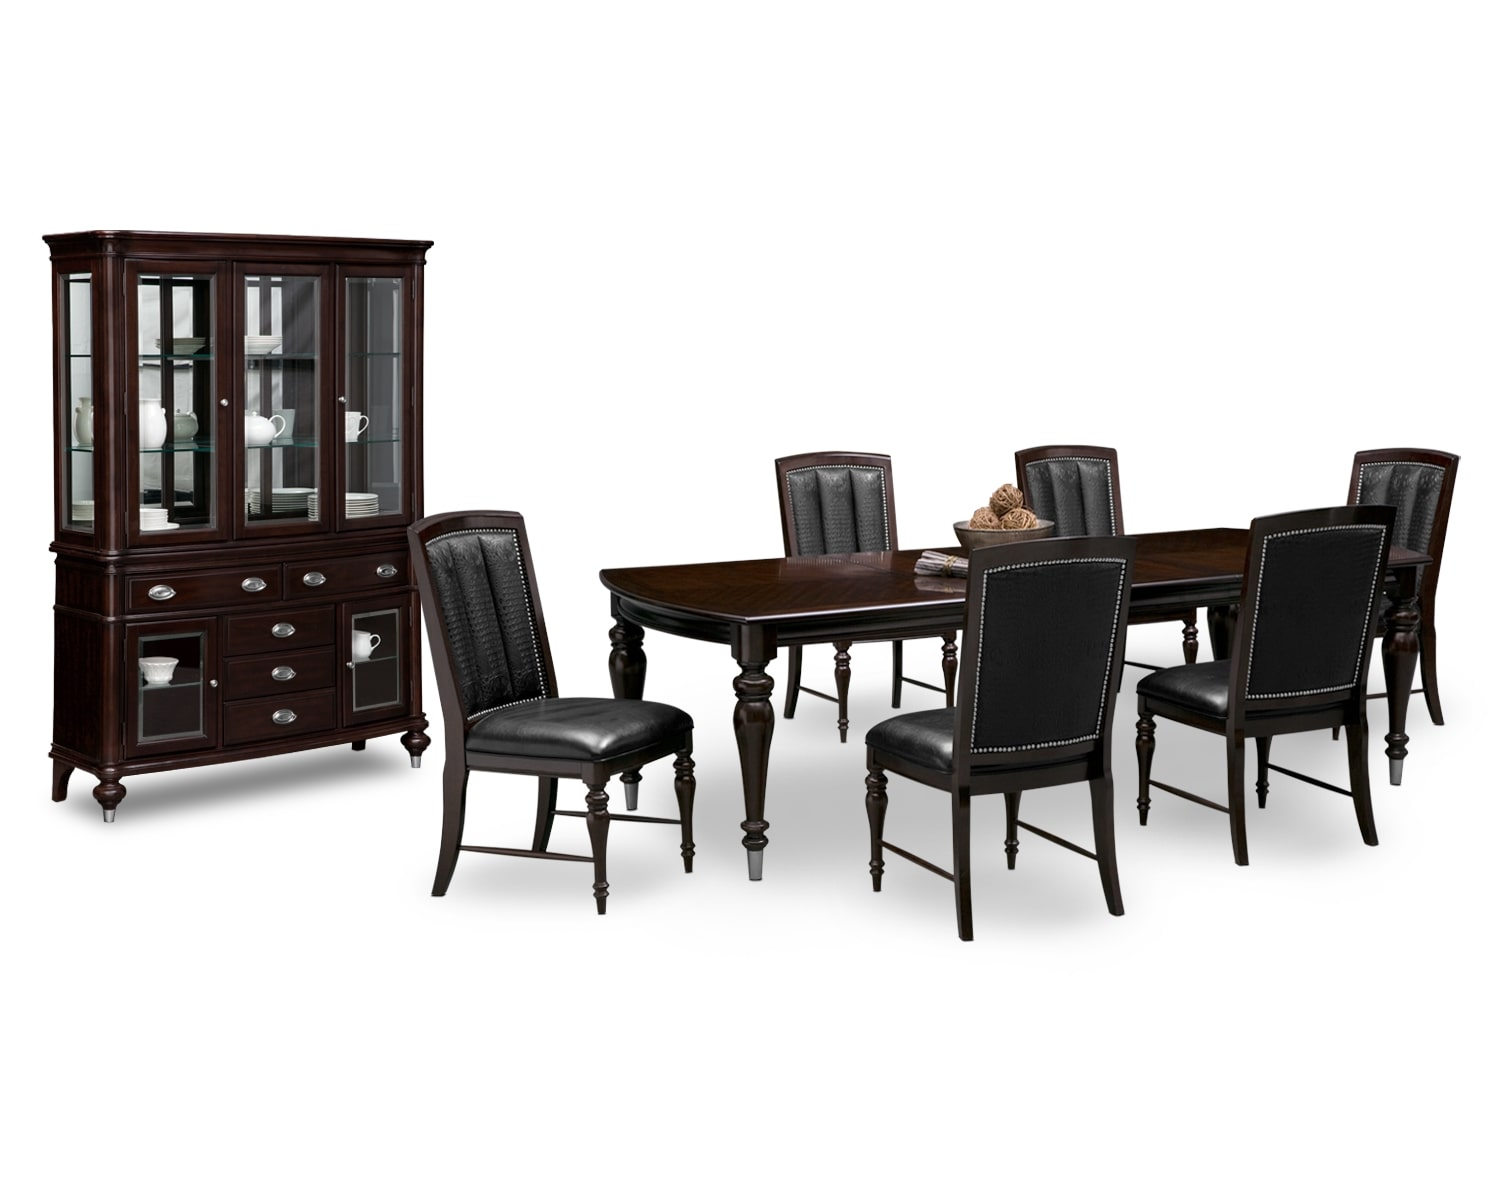 The Esquire Dining Collection